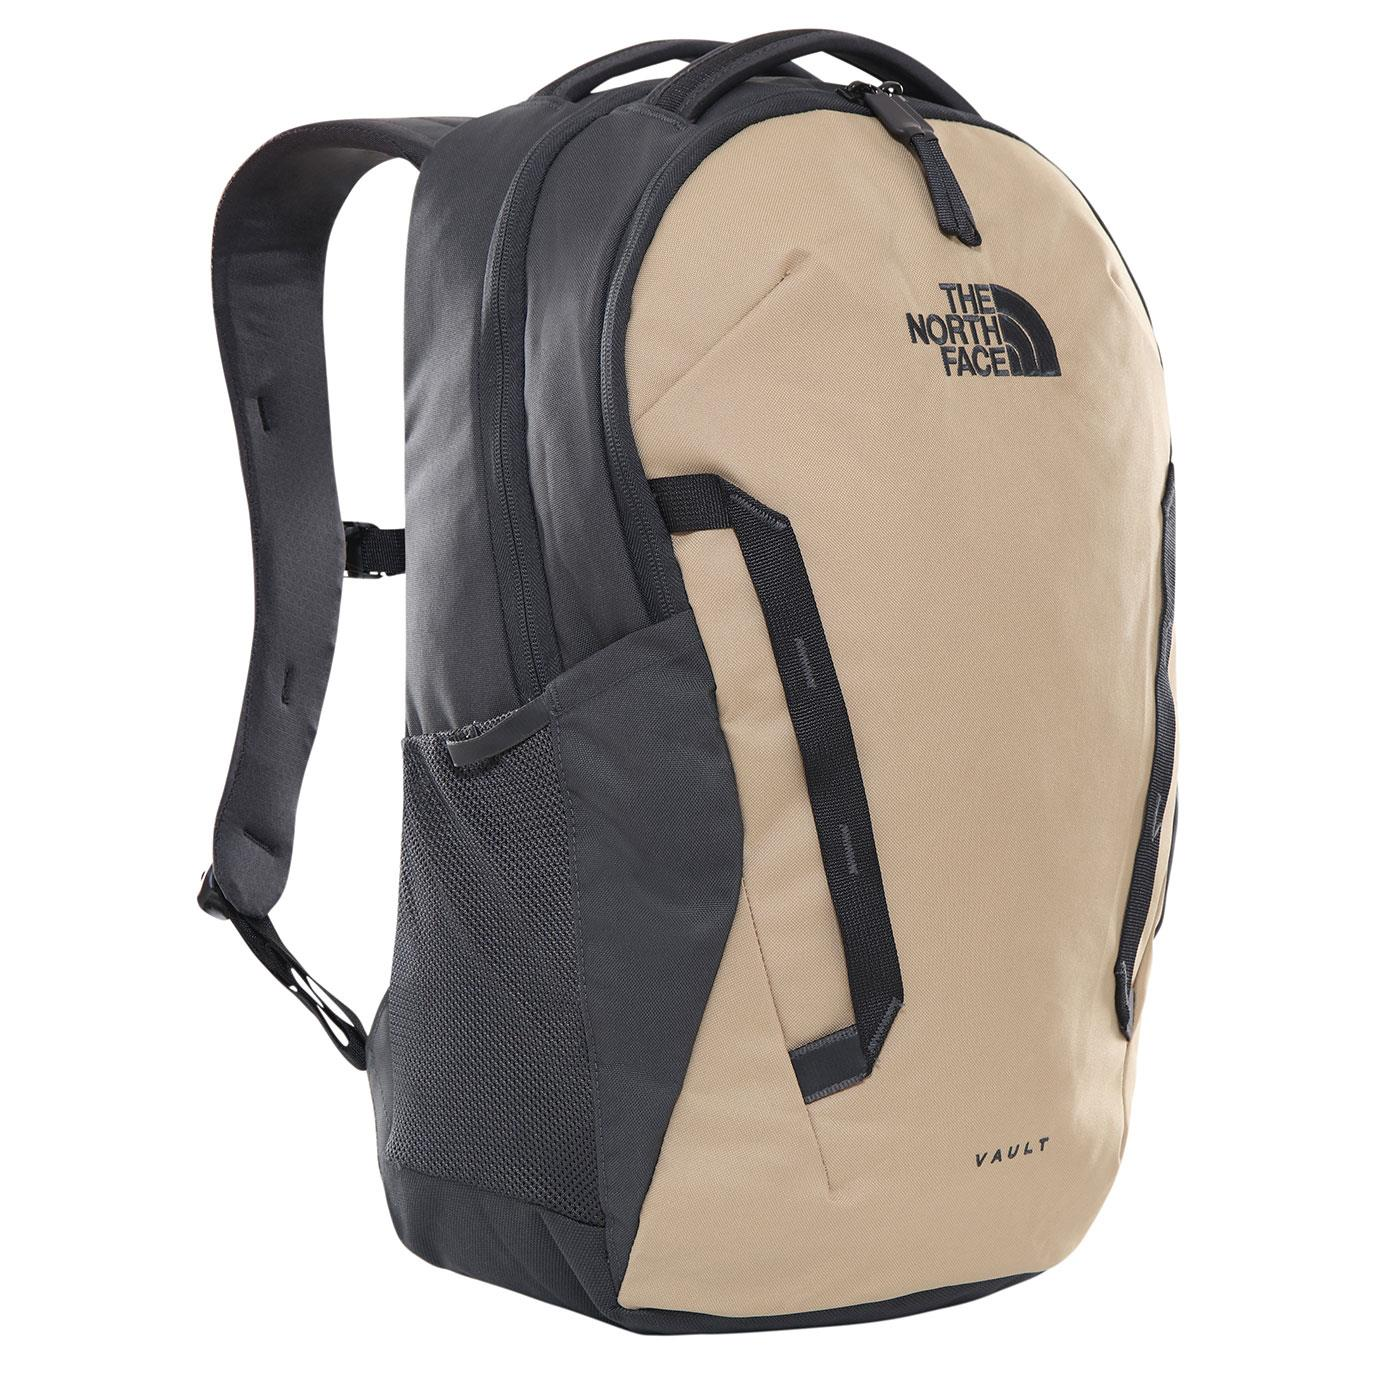 The Northface VAULT Çanta NF0A3VY2HB01